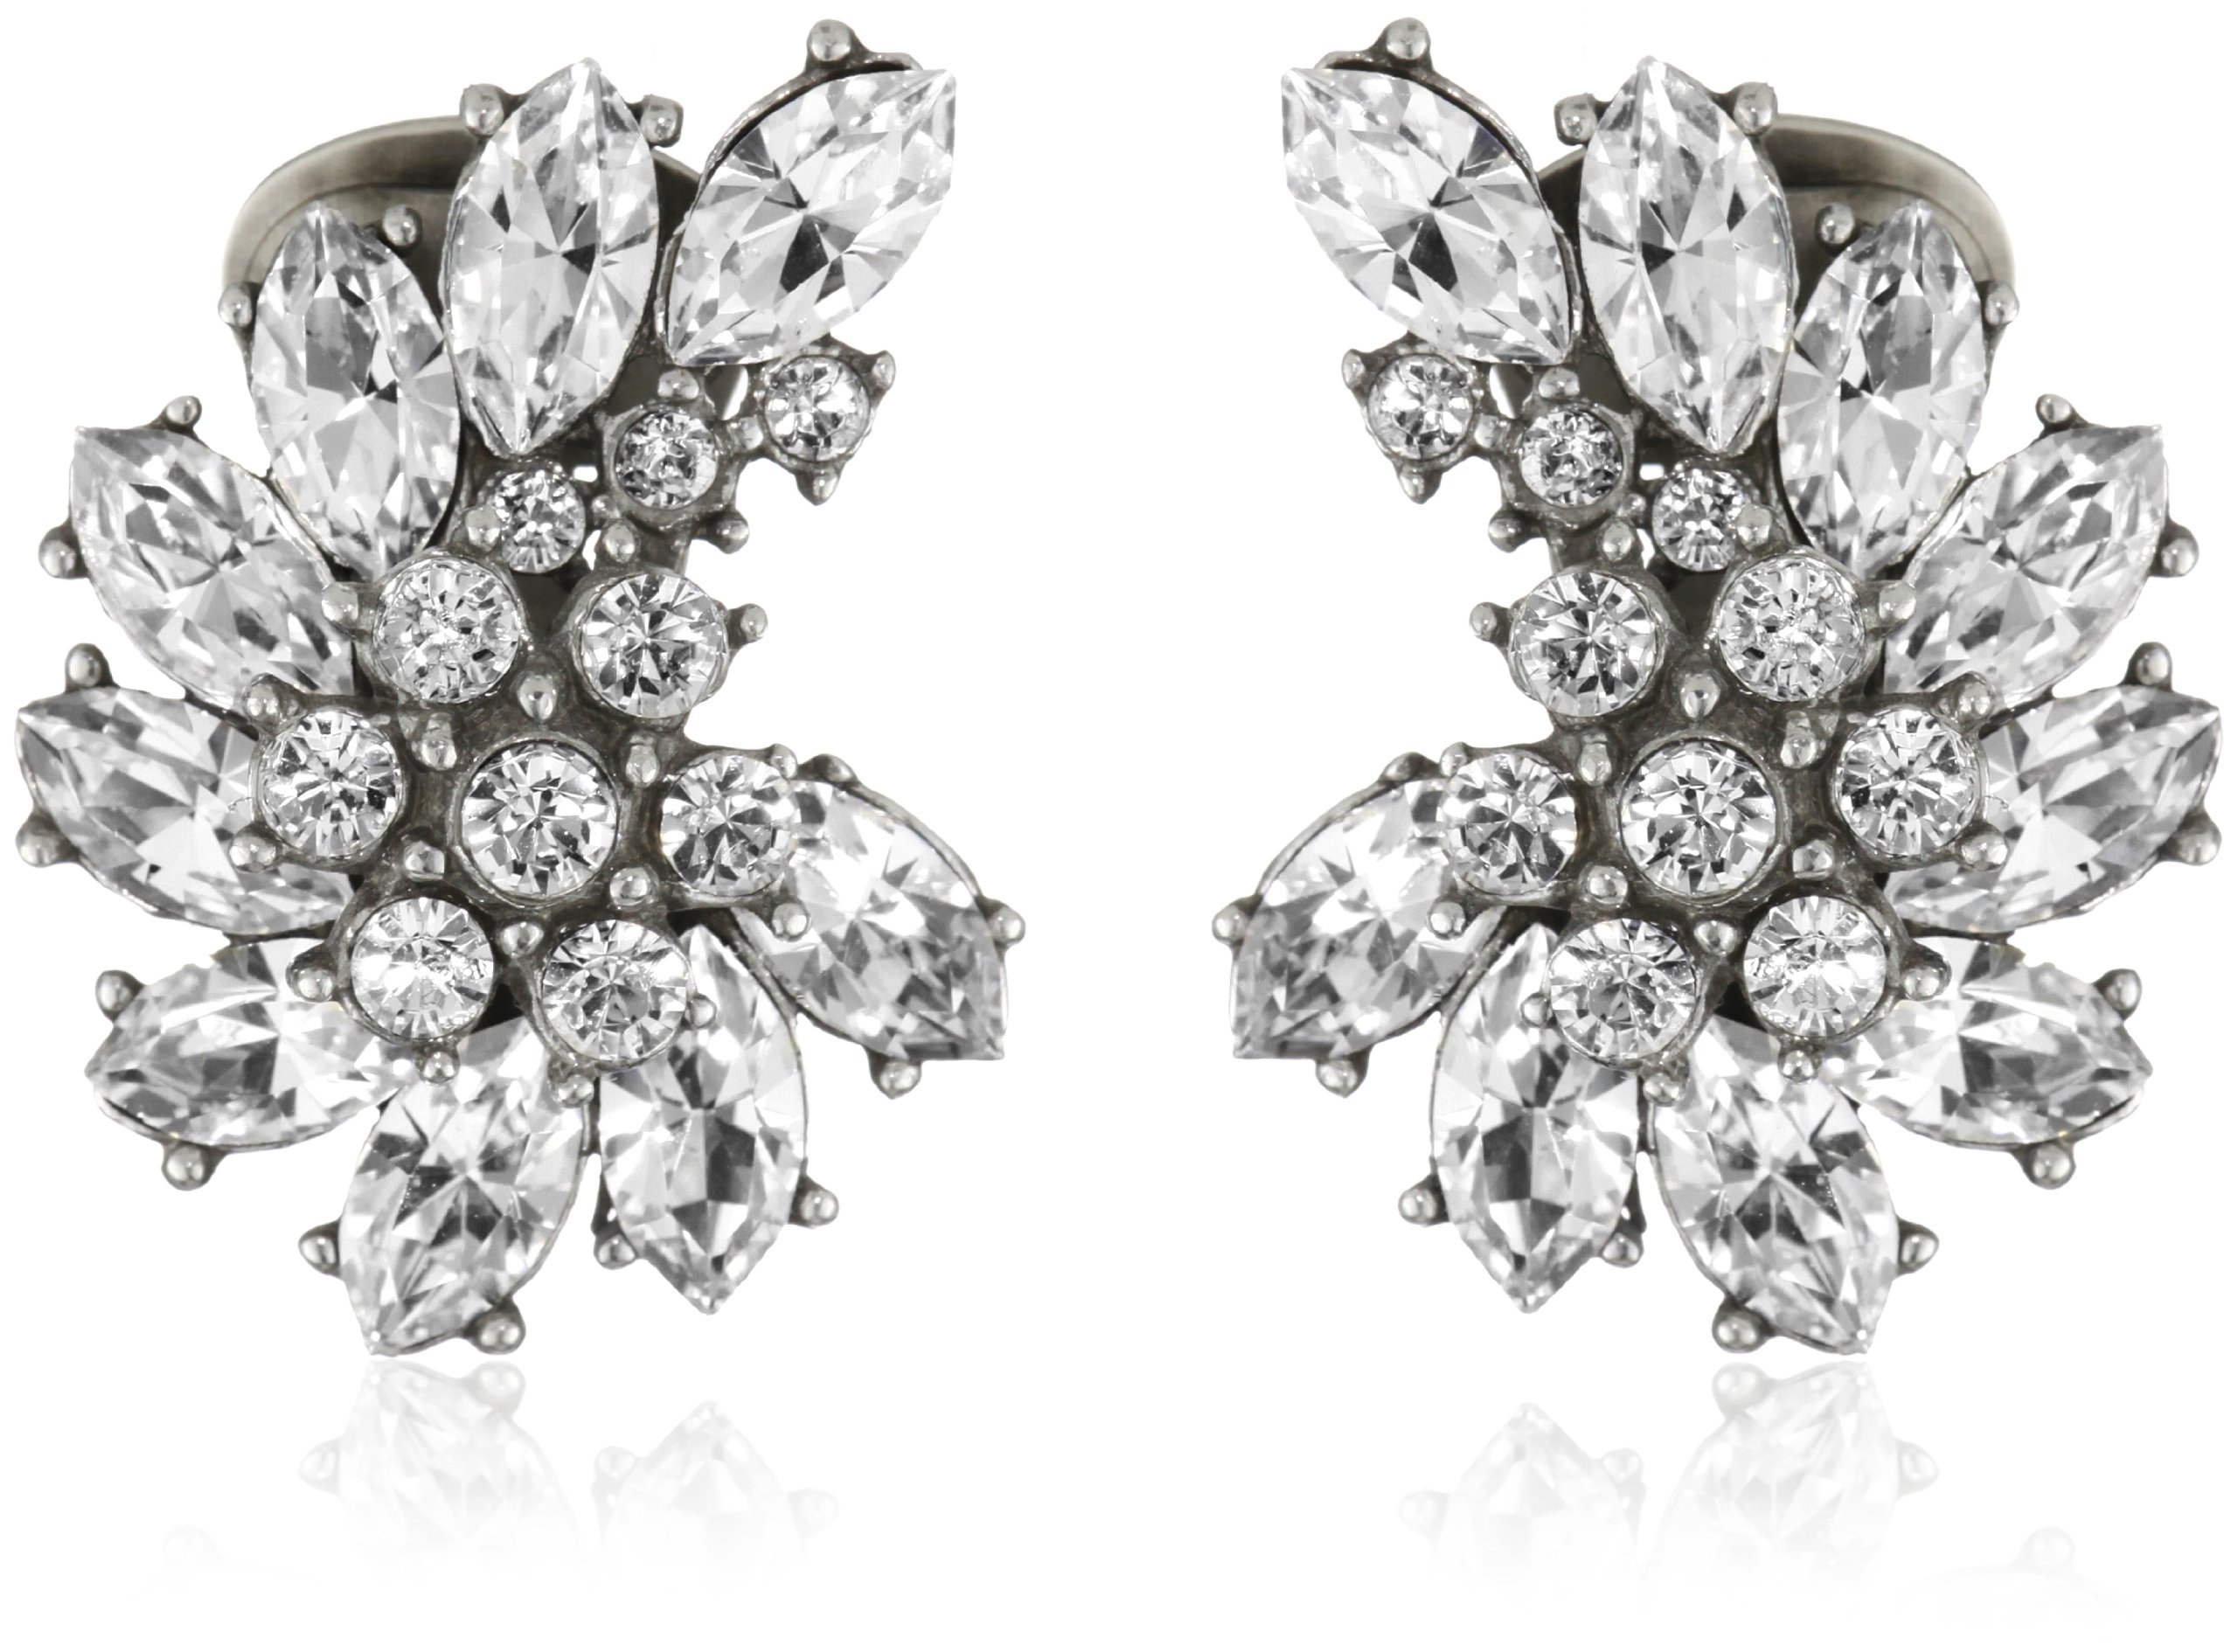 Ben-Amun Jewelry Swarovski Crystal Cluster Clip-On Earrings